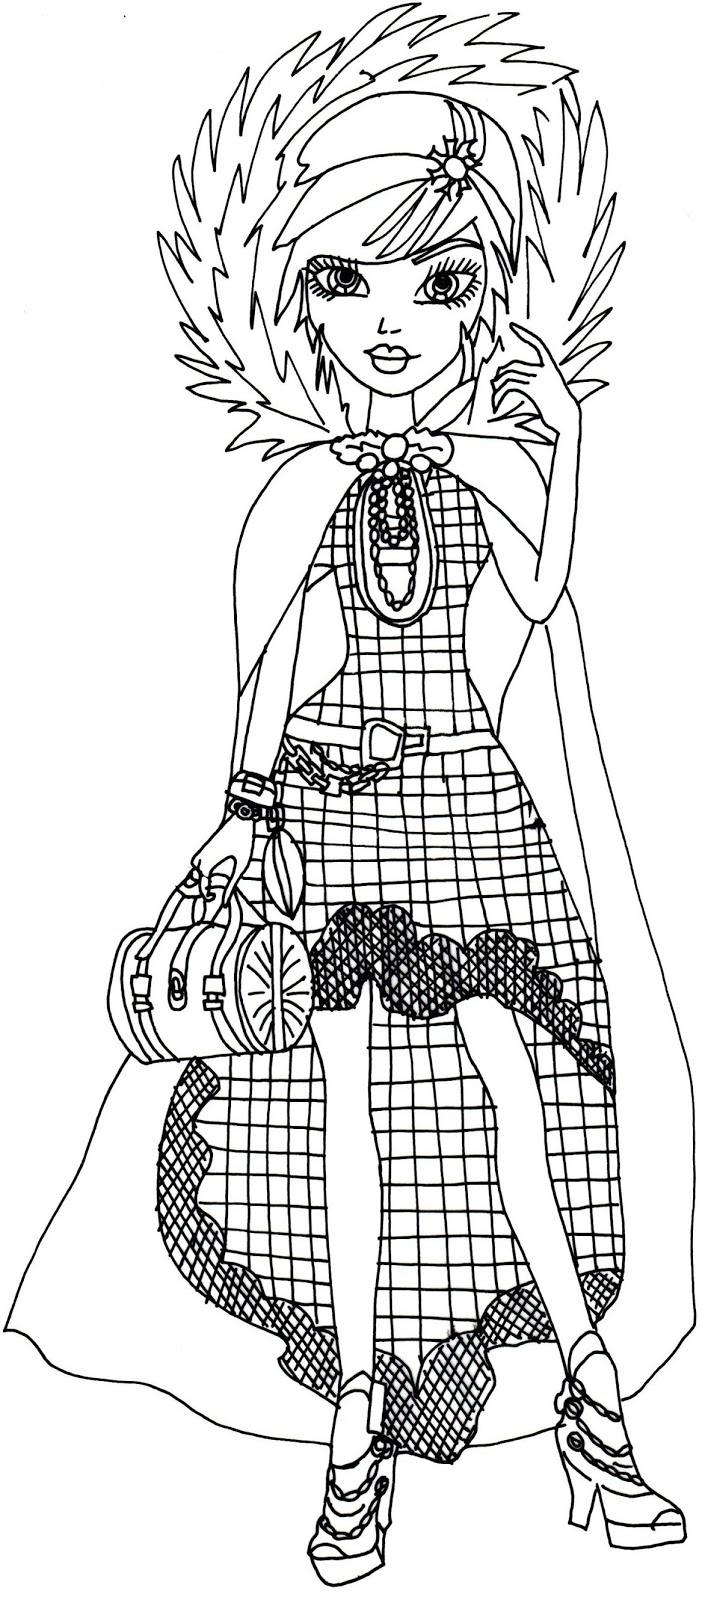 Free Printable Ever After High Coloring Pages: Cerise Hood Legacy ...